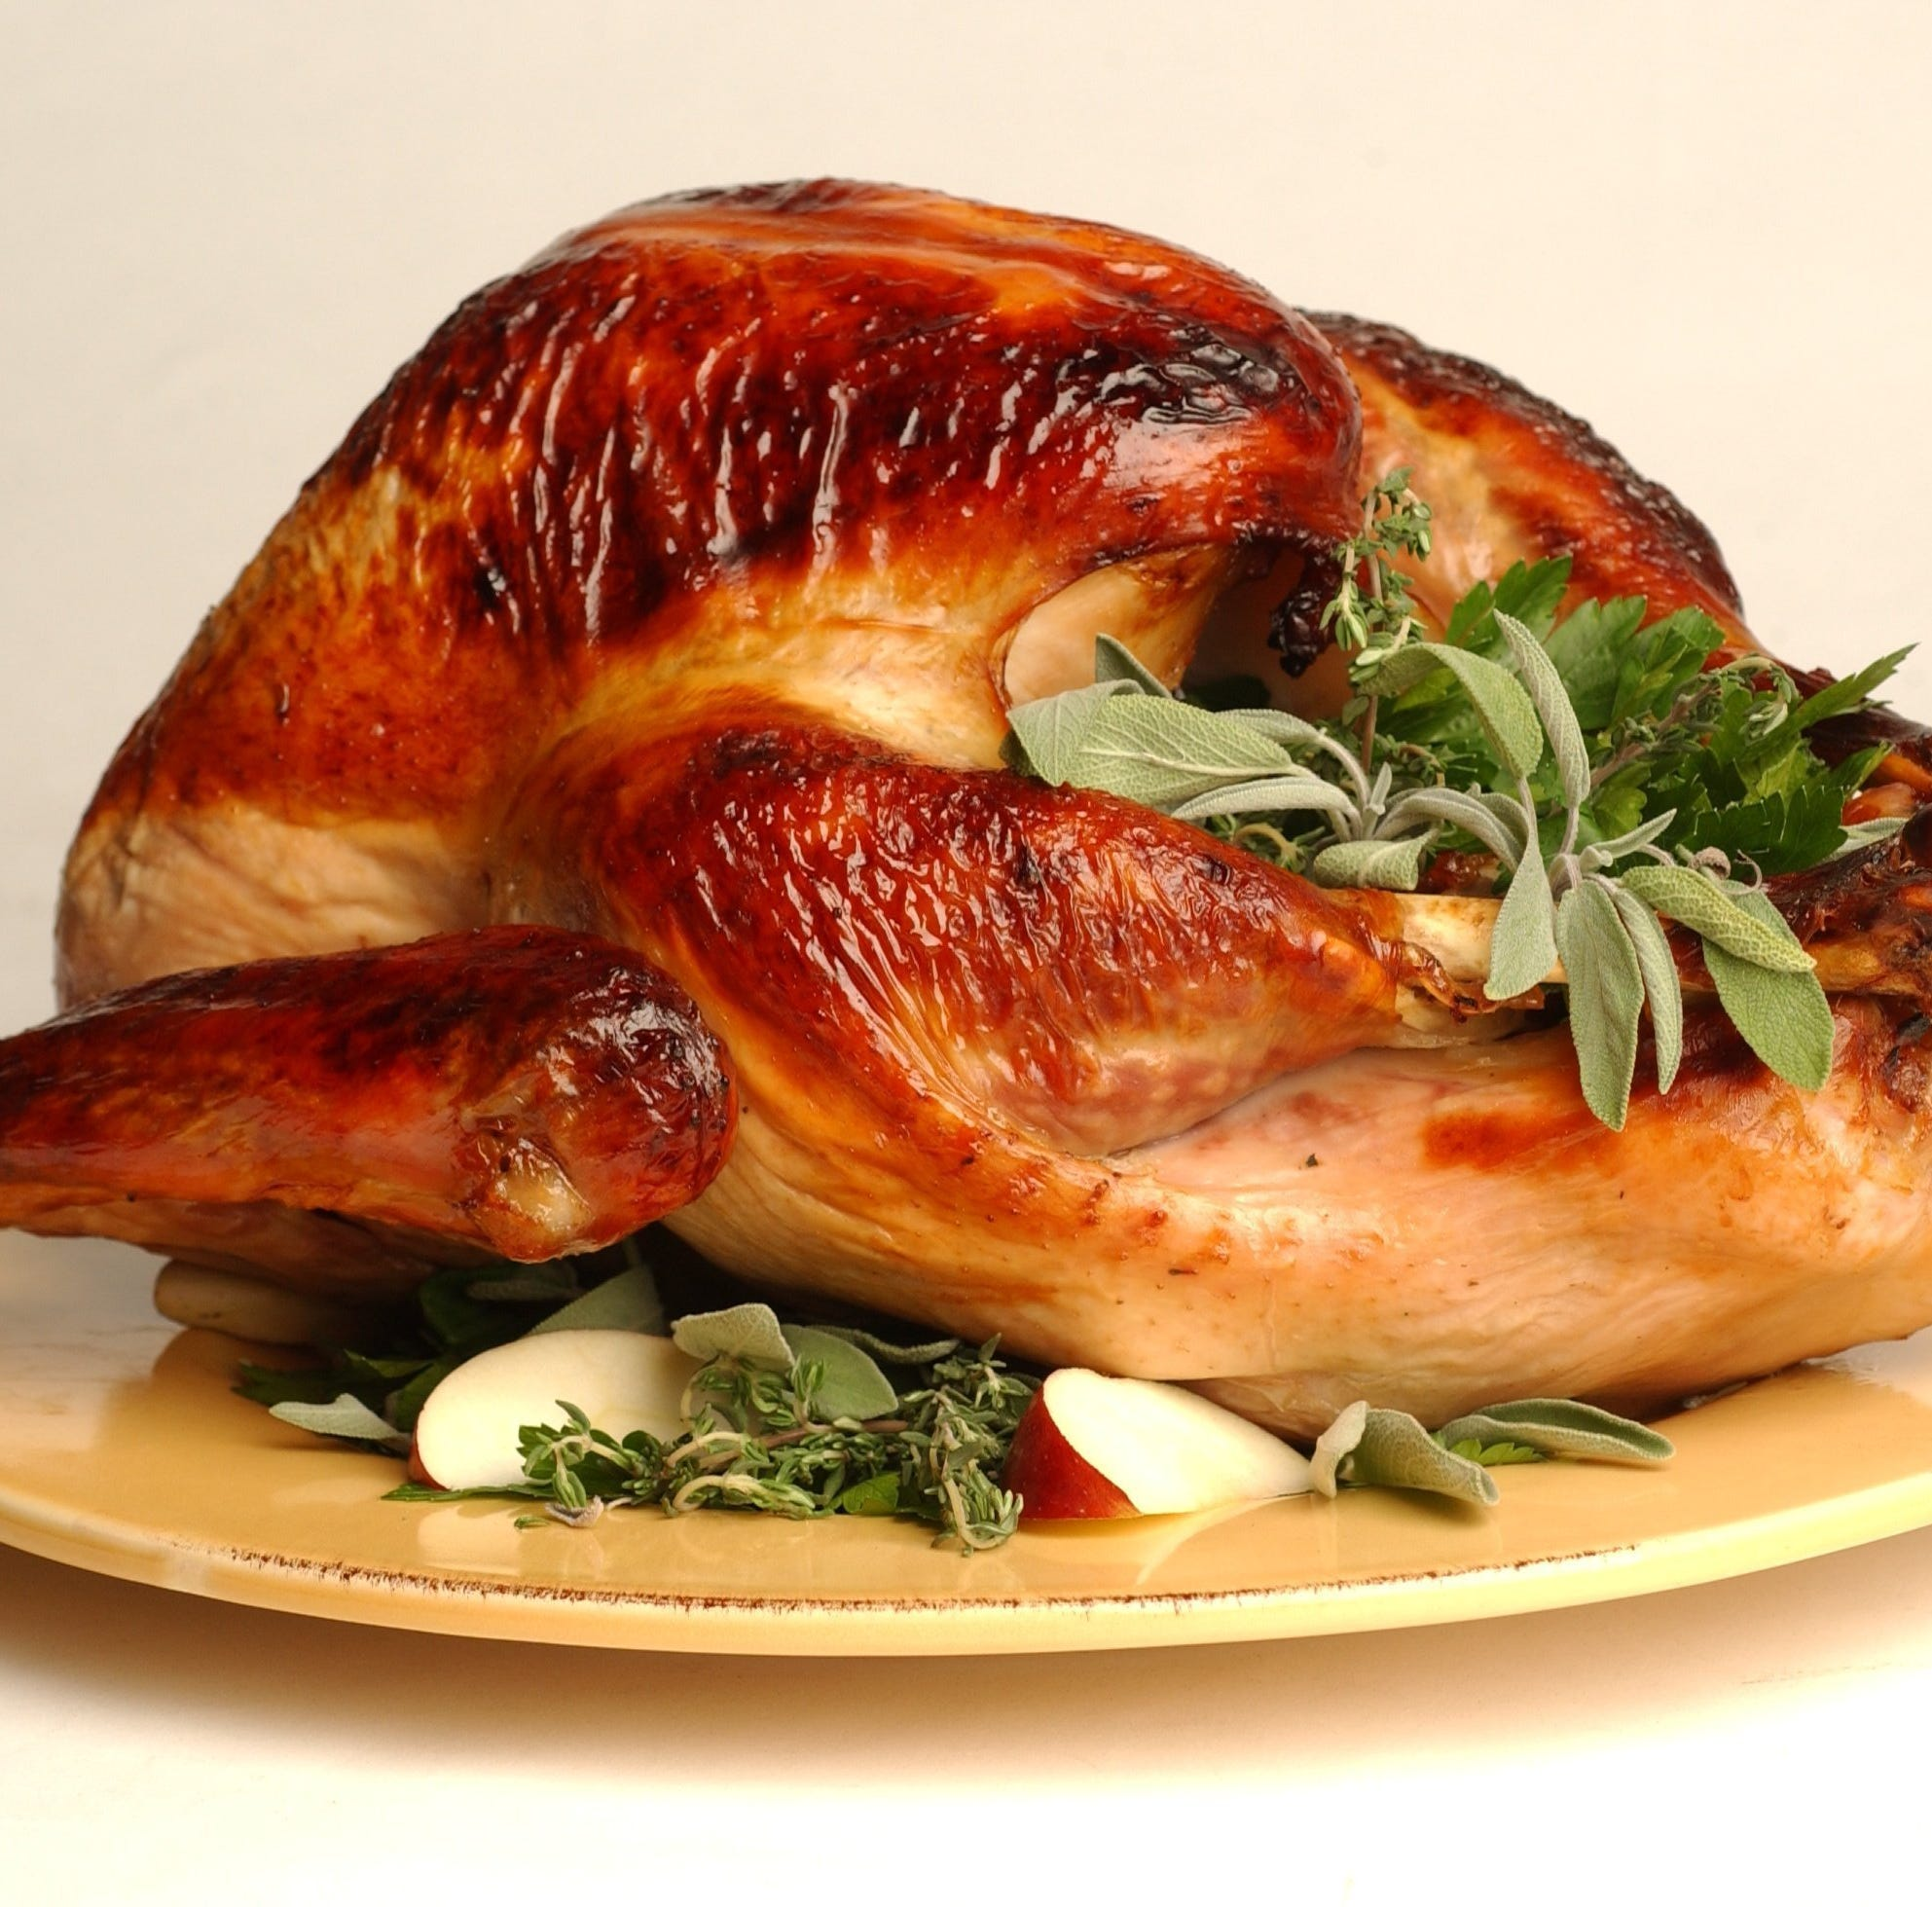 To brine or not to brine your Thanksgiving turkey?